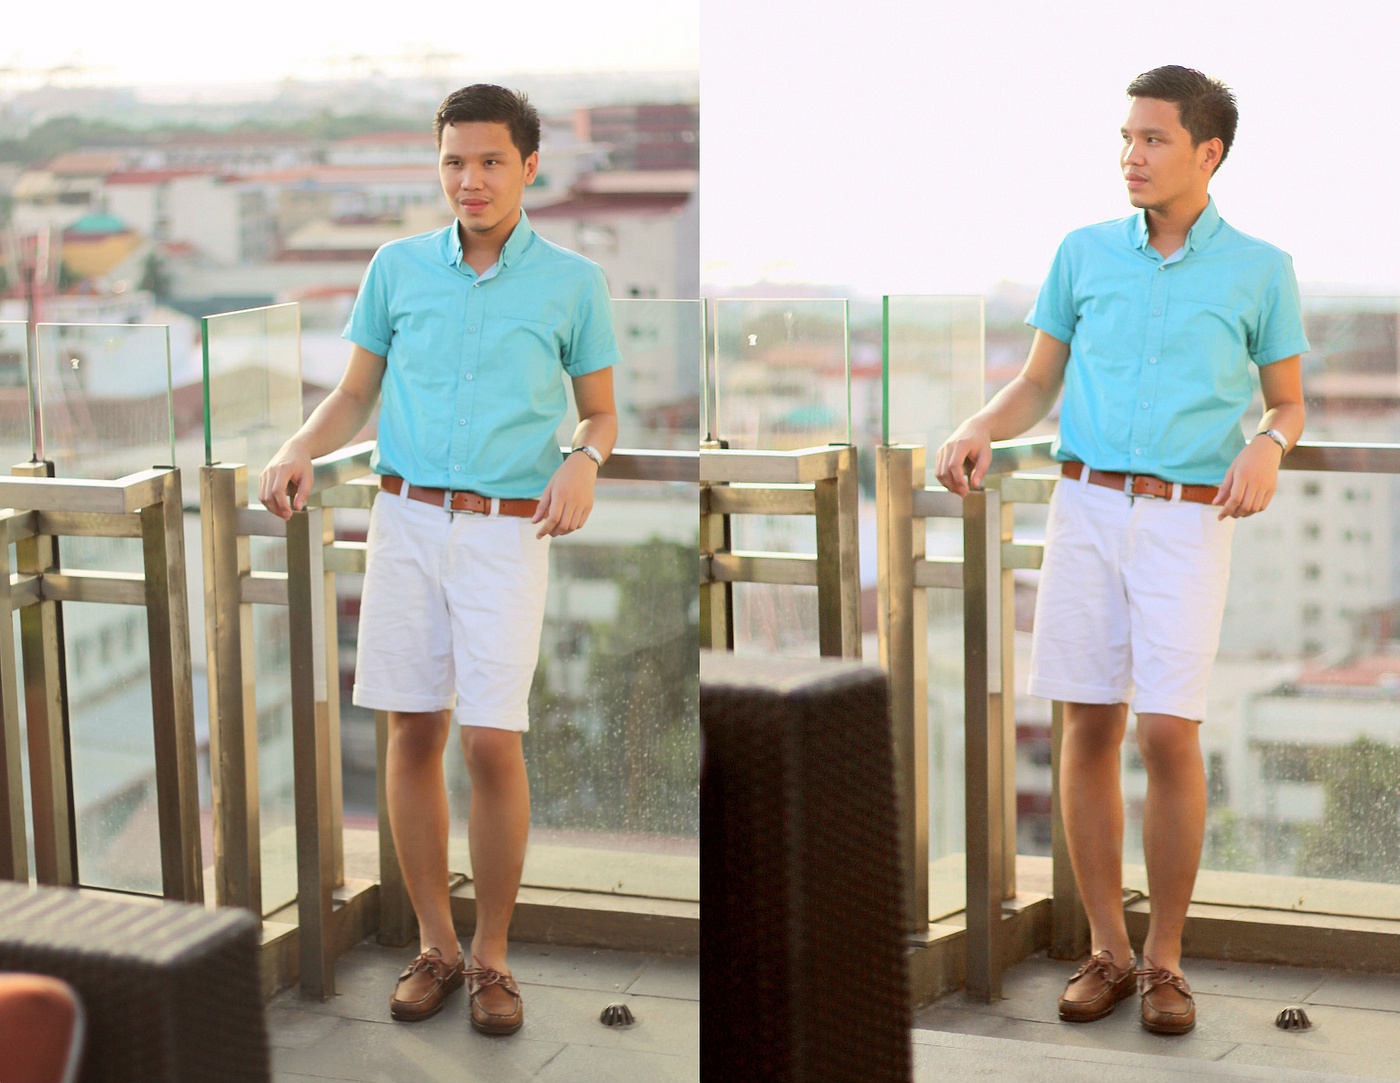 maldita man top, giordano shorts, sebago shoes for men